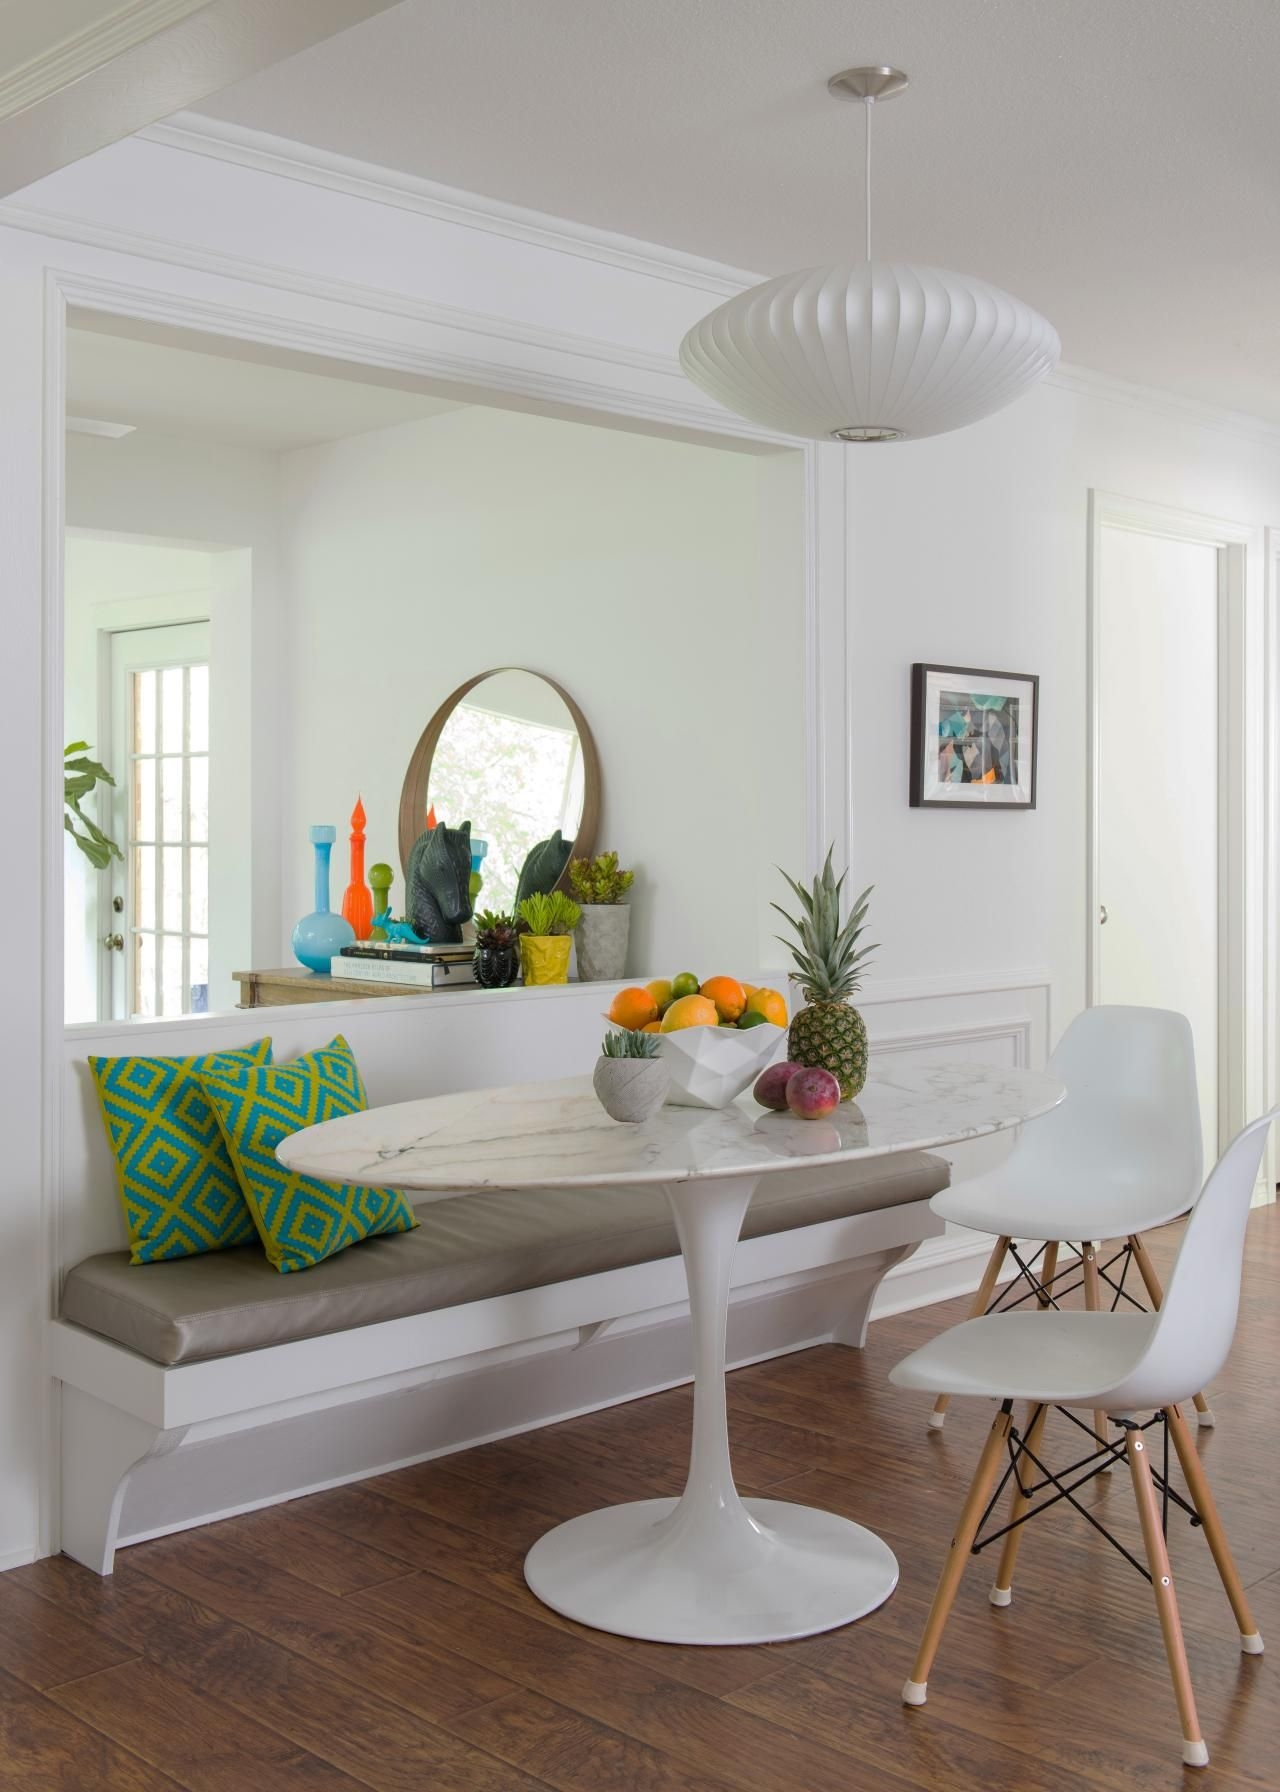 12 Ways To Make A Banquette Work In Your Kitchen  Hgtv'S Decorating  Design Blog  Hgtv